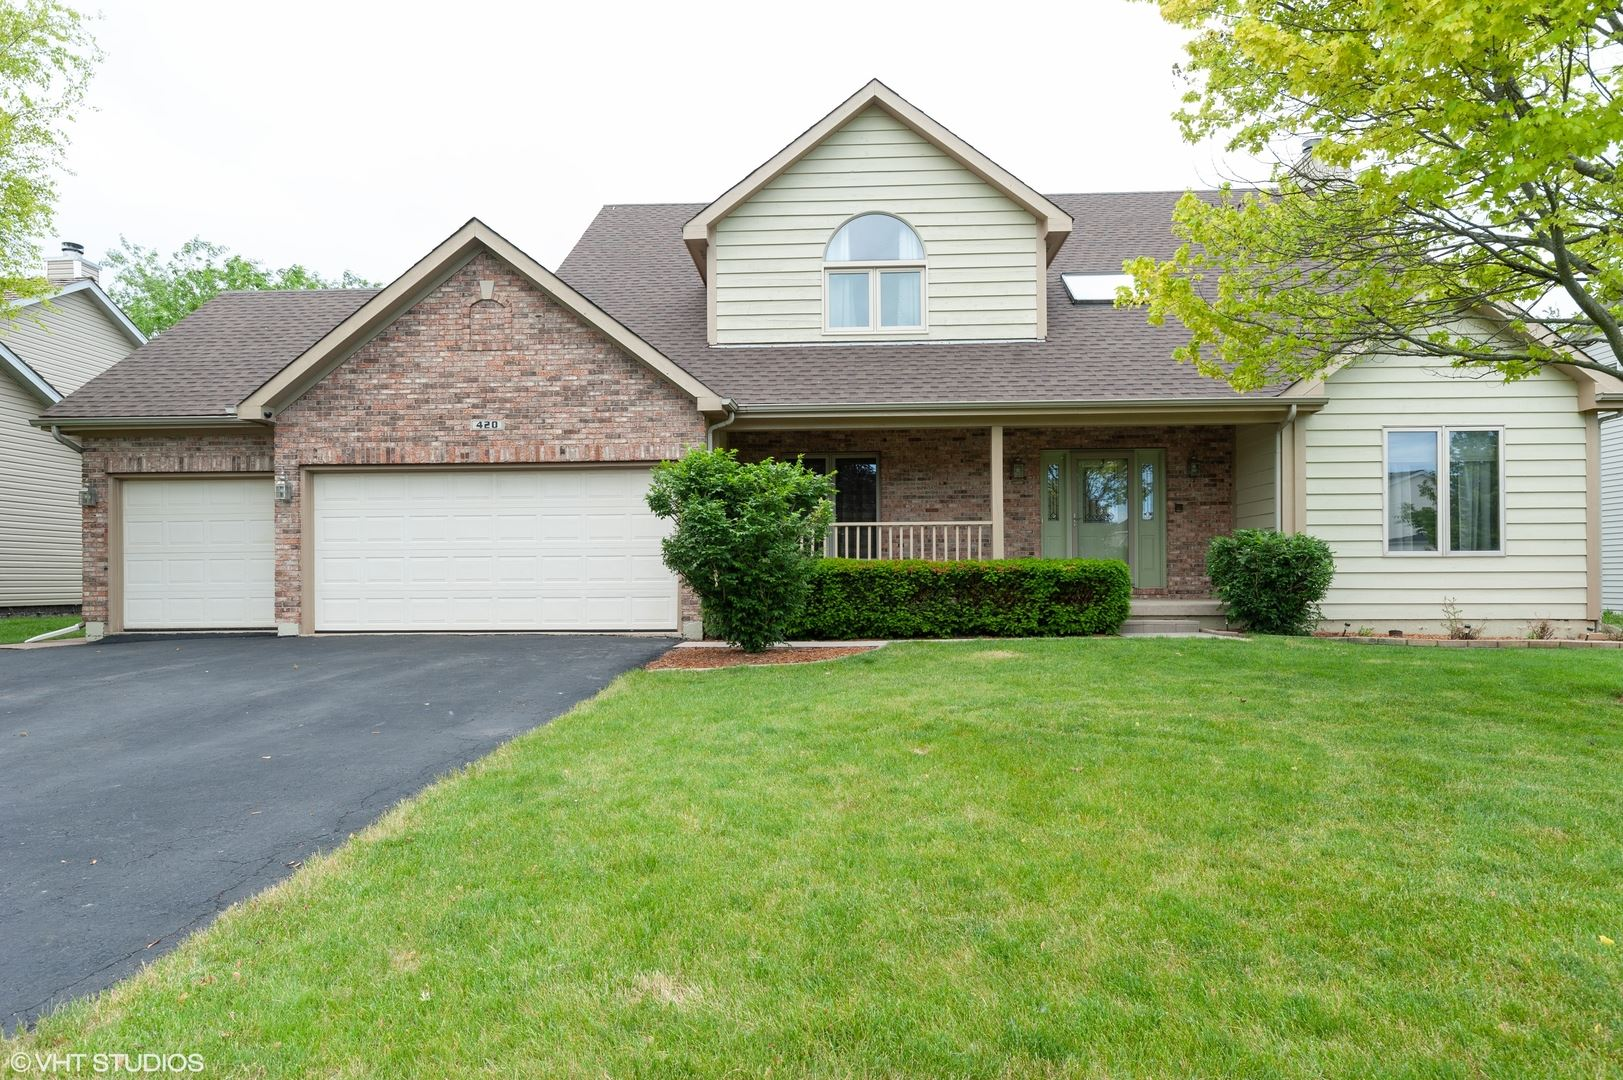 420 KERRY Way, Grayslake, IL 60030 - #: 10741750